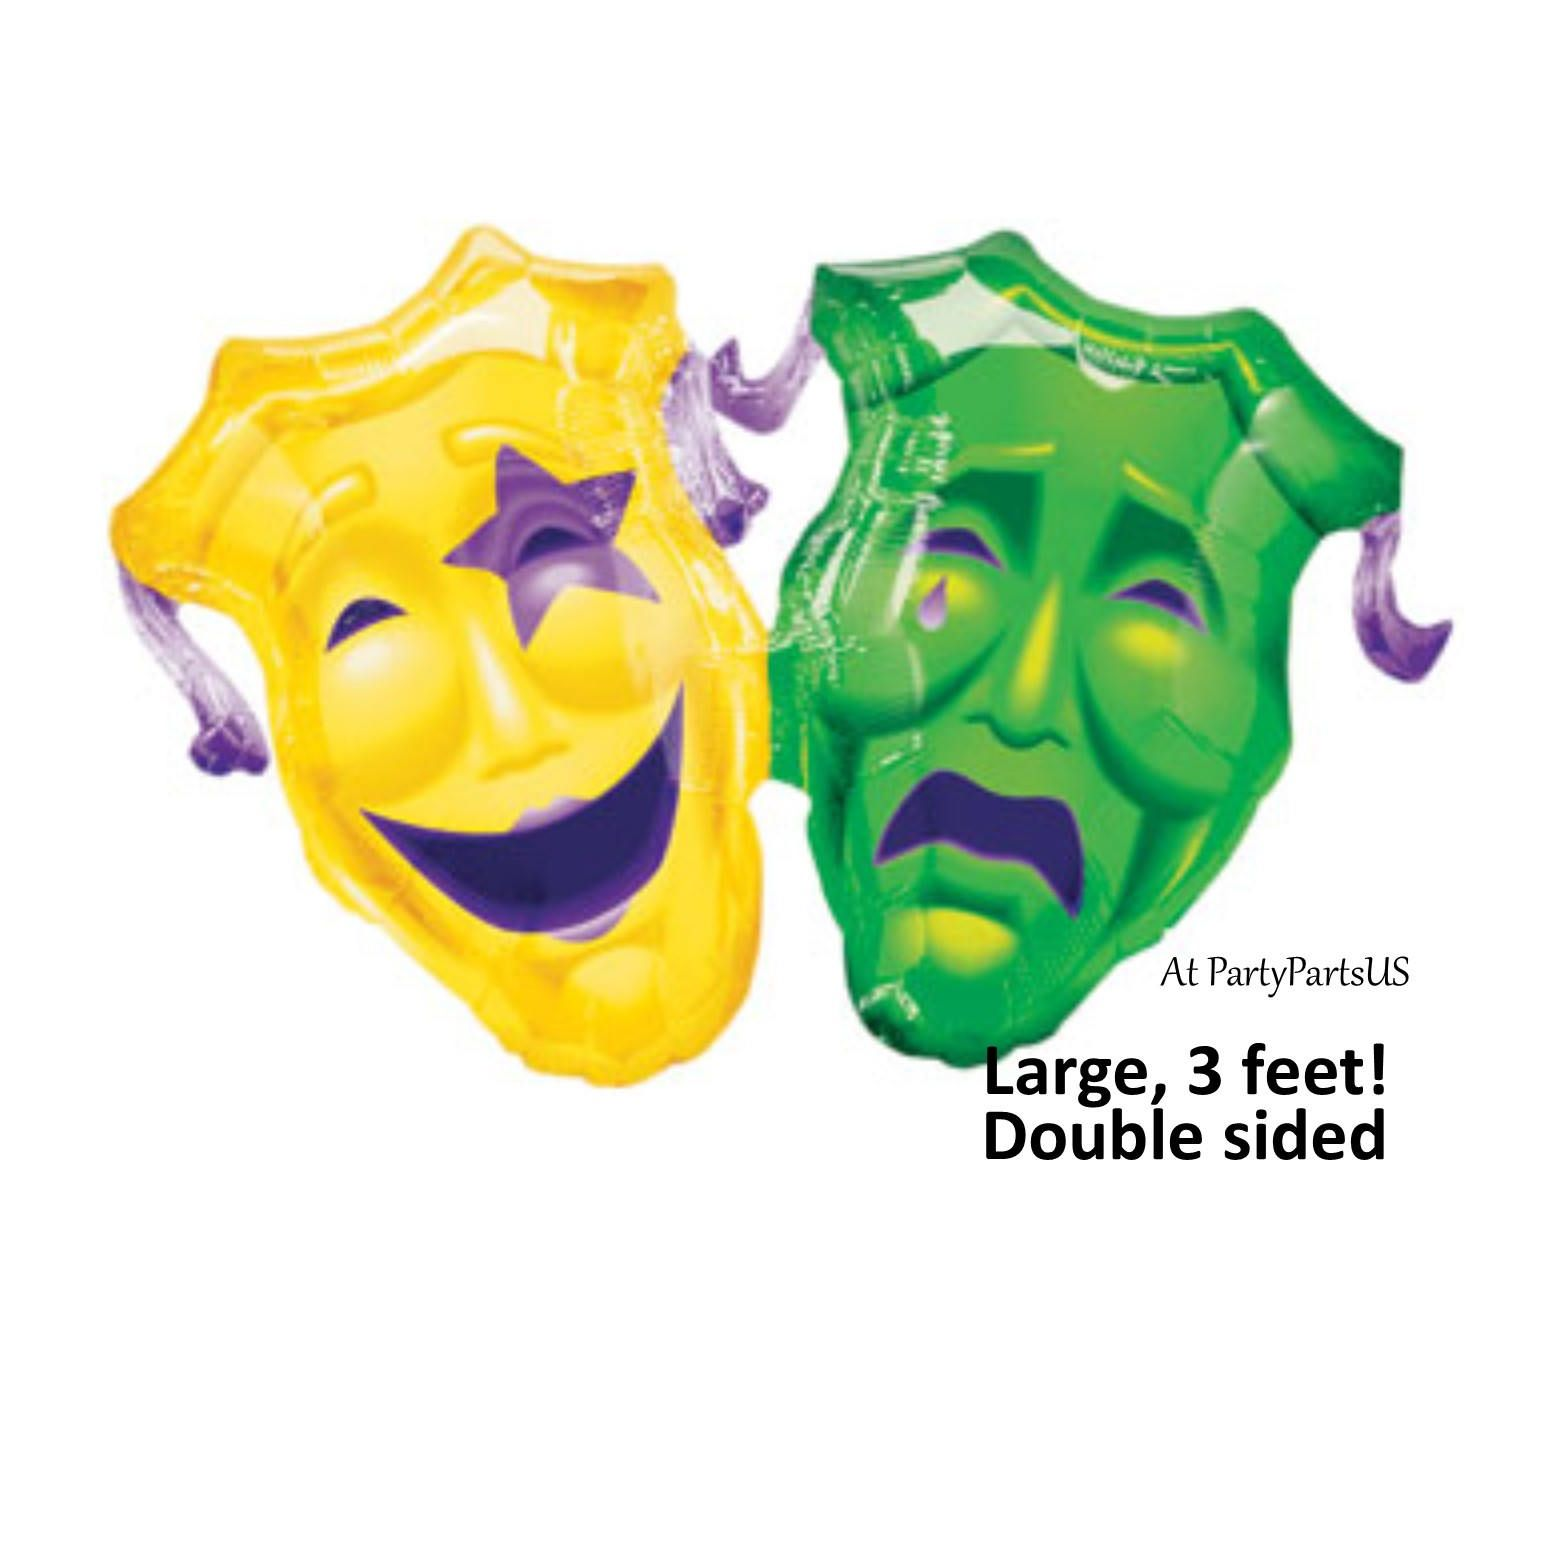 Mardi Gras Comedy Tragedy Masks Balloon, Huge, Drama, Performing ...